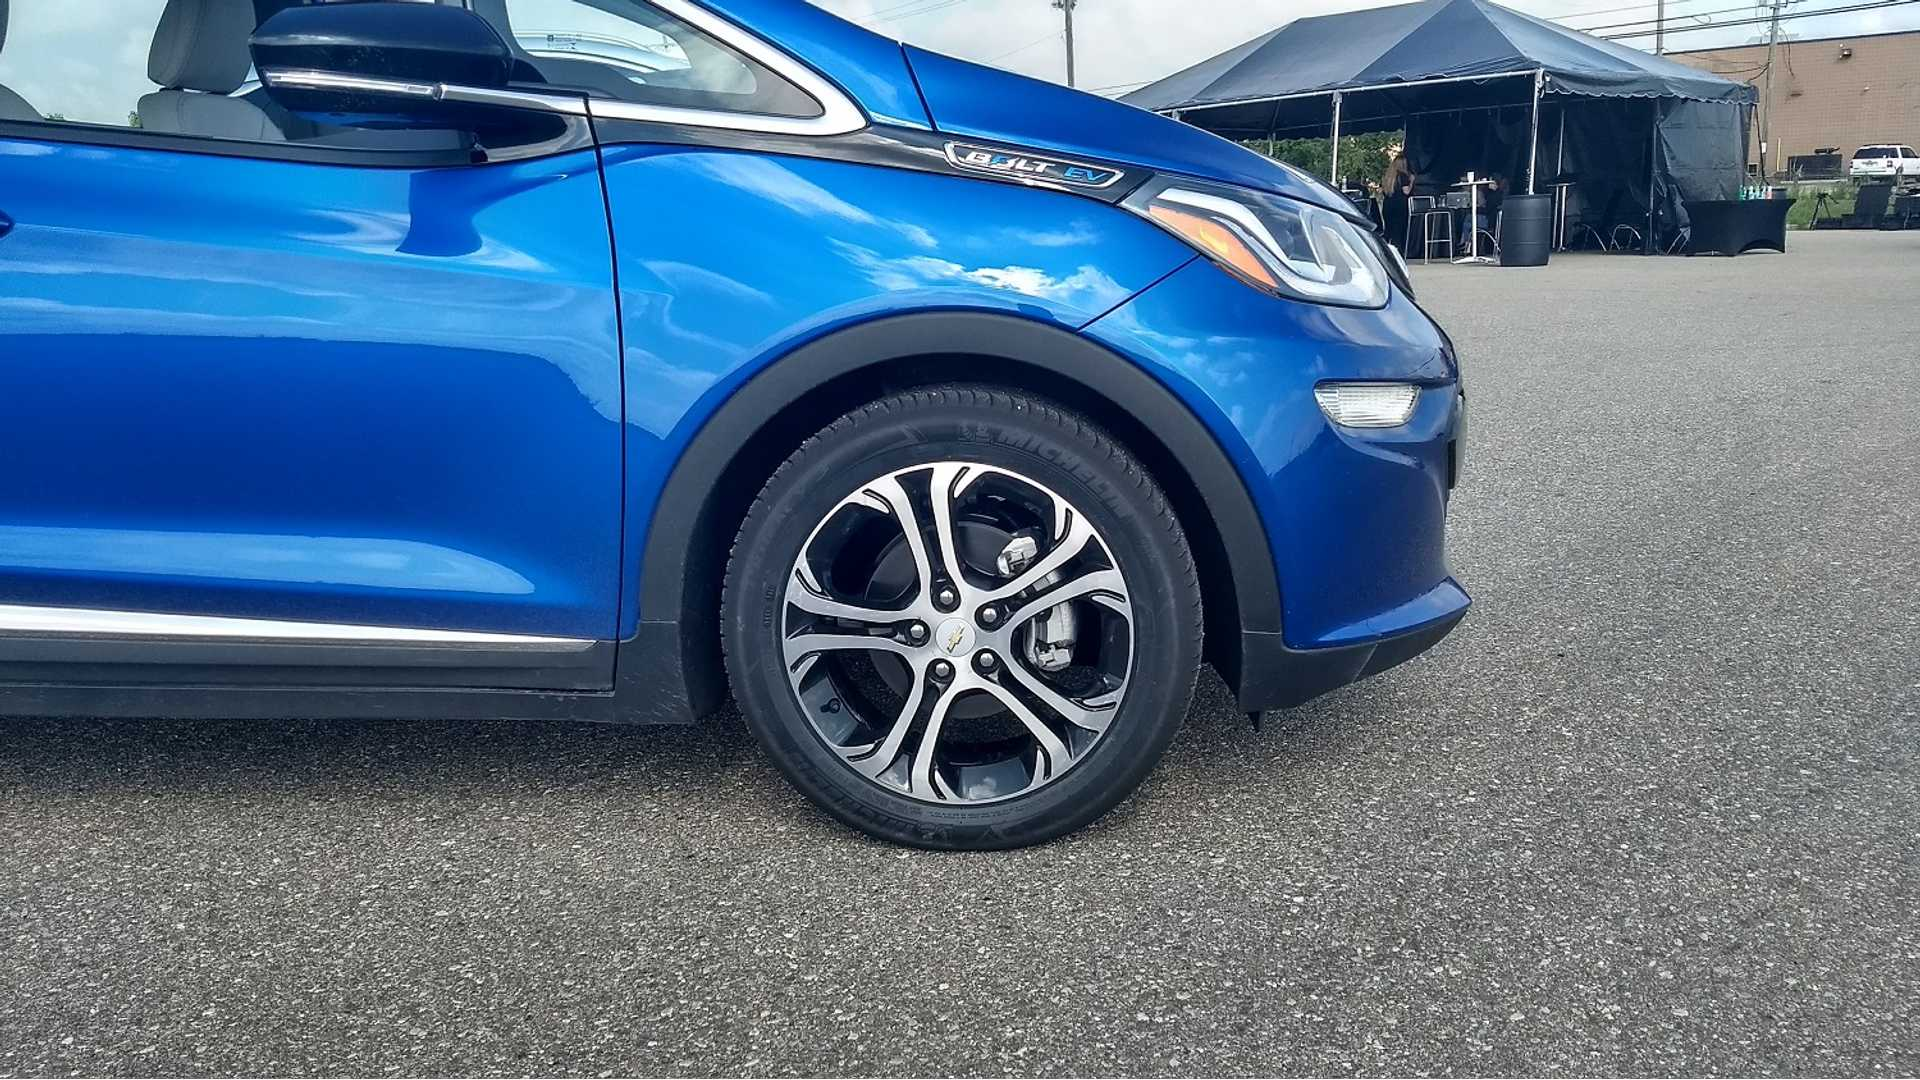 UPDATE: Chevy Bolt Finally Gets Its Over-The-Air (OTA) Updates